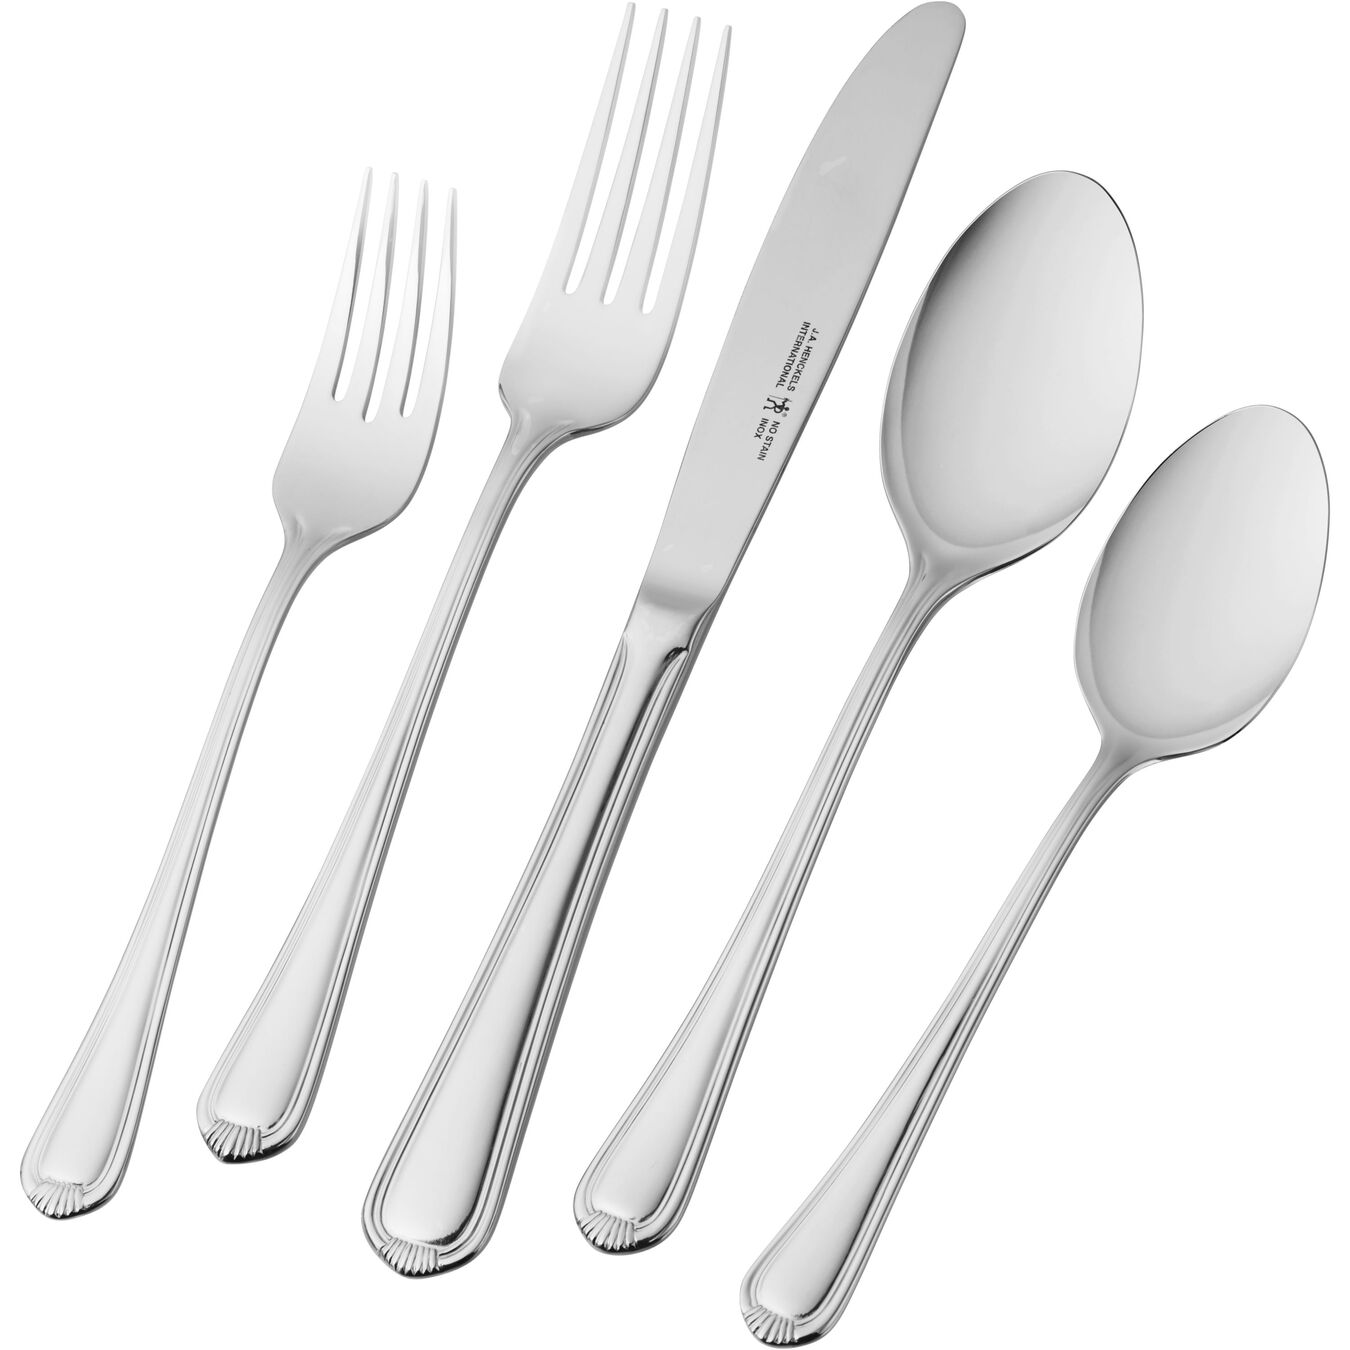 65-pc Menu set, 18/10 Stainless Steel ,,large 1